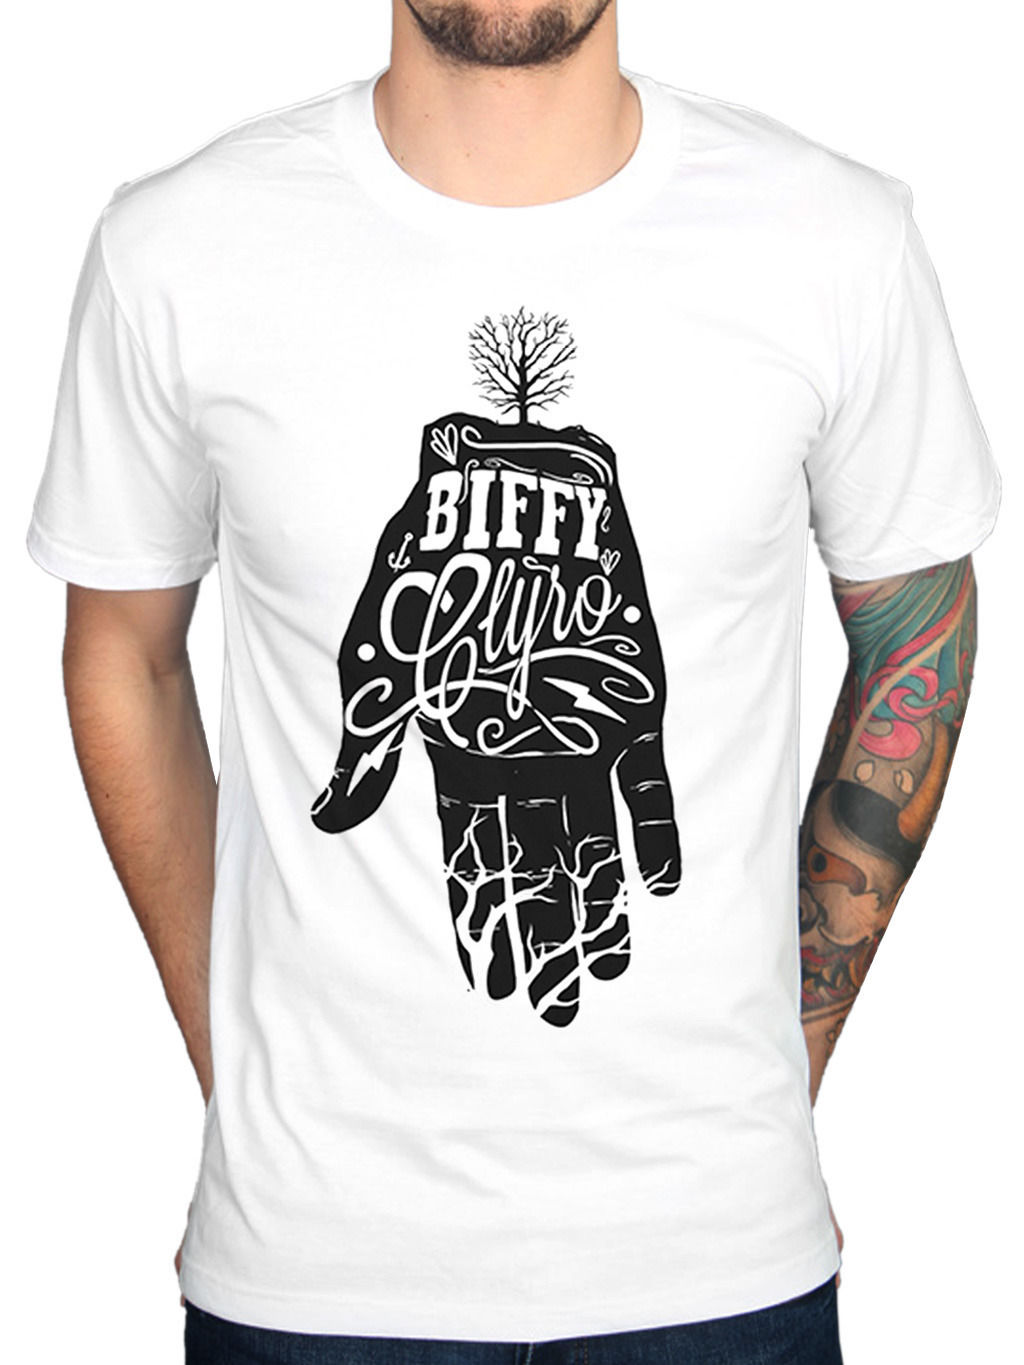 2018 Fashion Classic Biffy Clyro Hand T-Shirt Only Revolutions Blackened Sky New Merchandise Casual Short Sleeve Shirt Tee